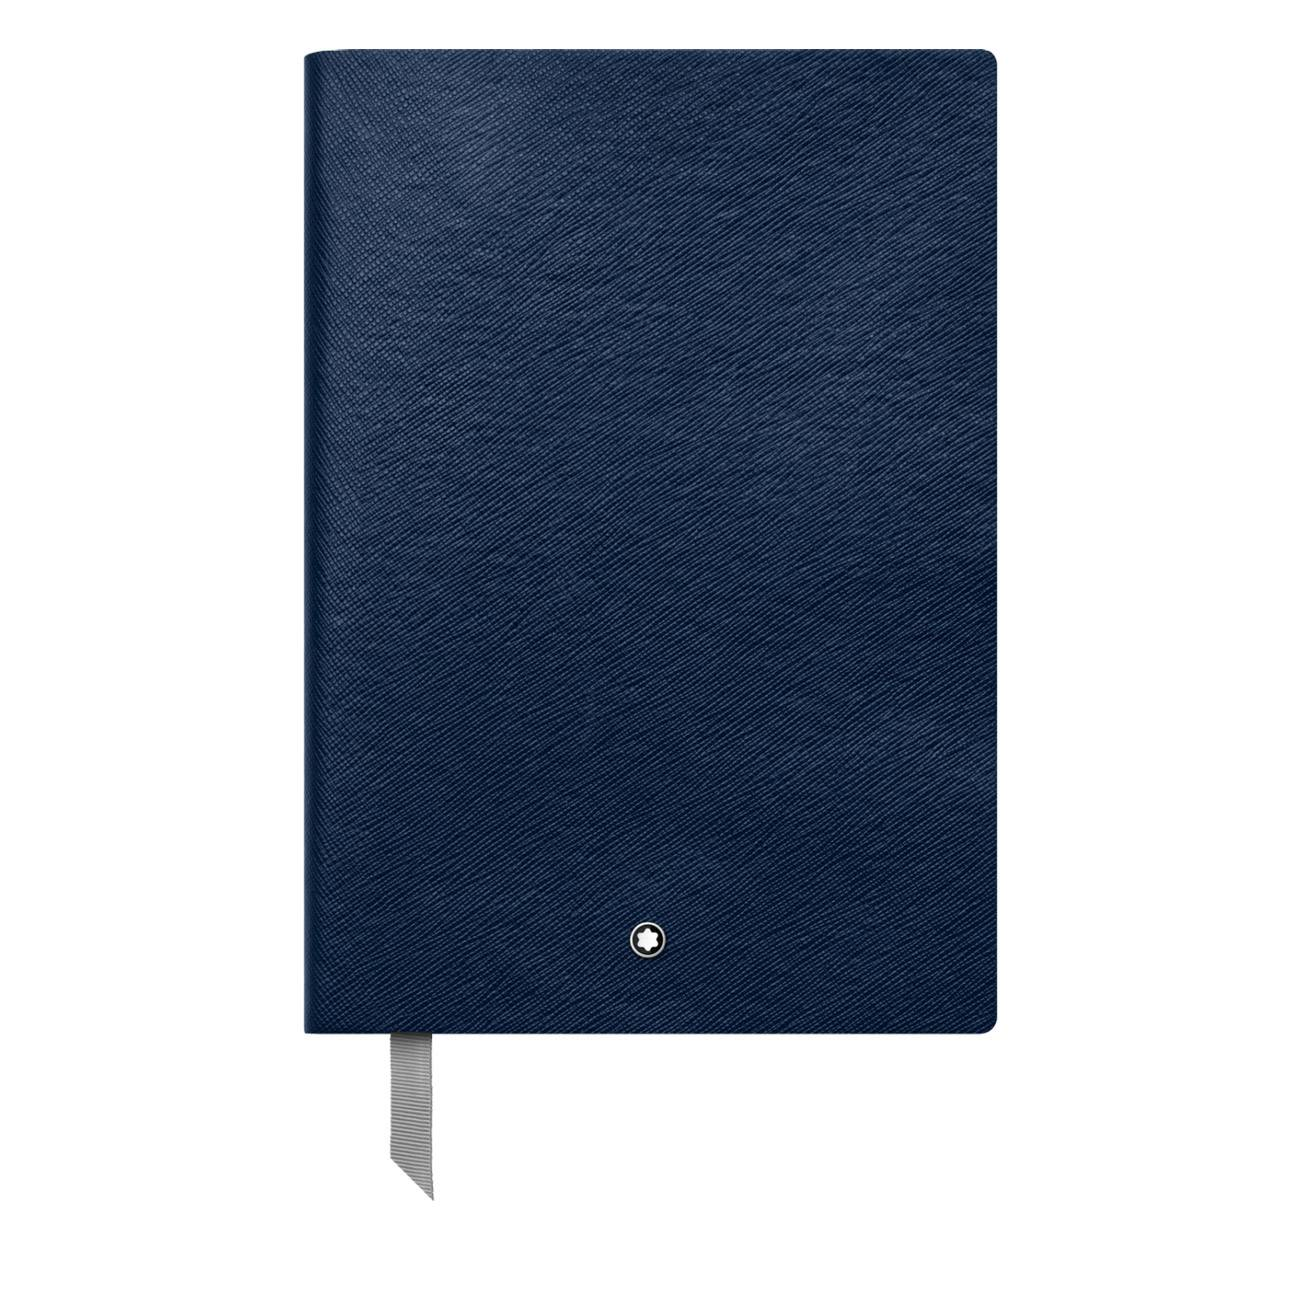 NOTEBOOK # 146 BLANK - 192 Pages